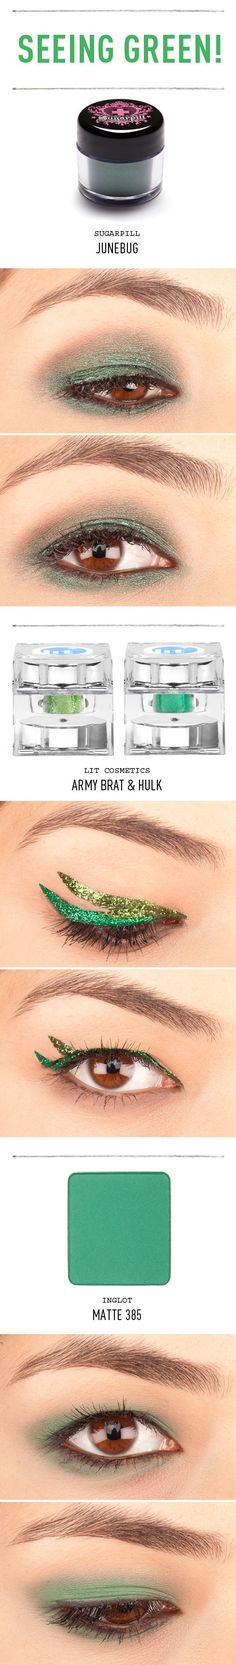 Lucky Charm: Green Shadows You'll Love